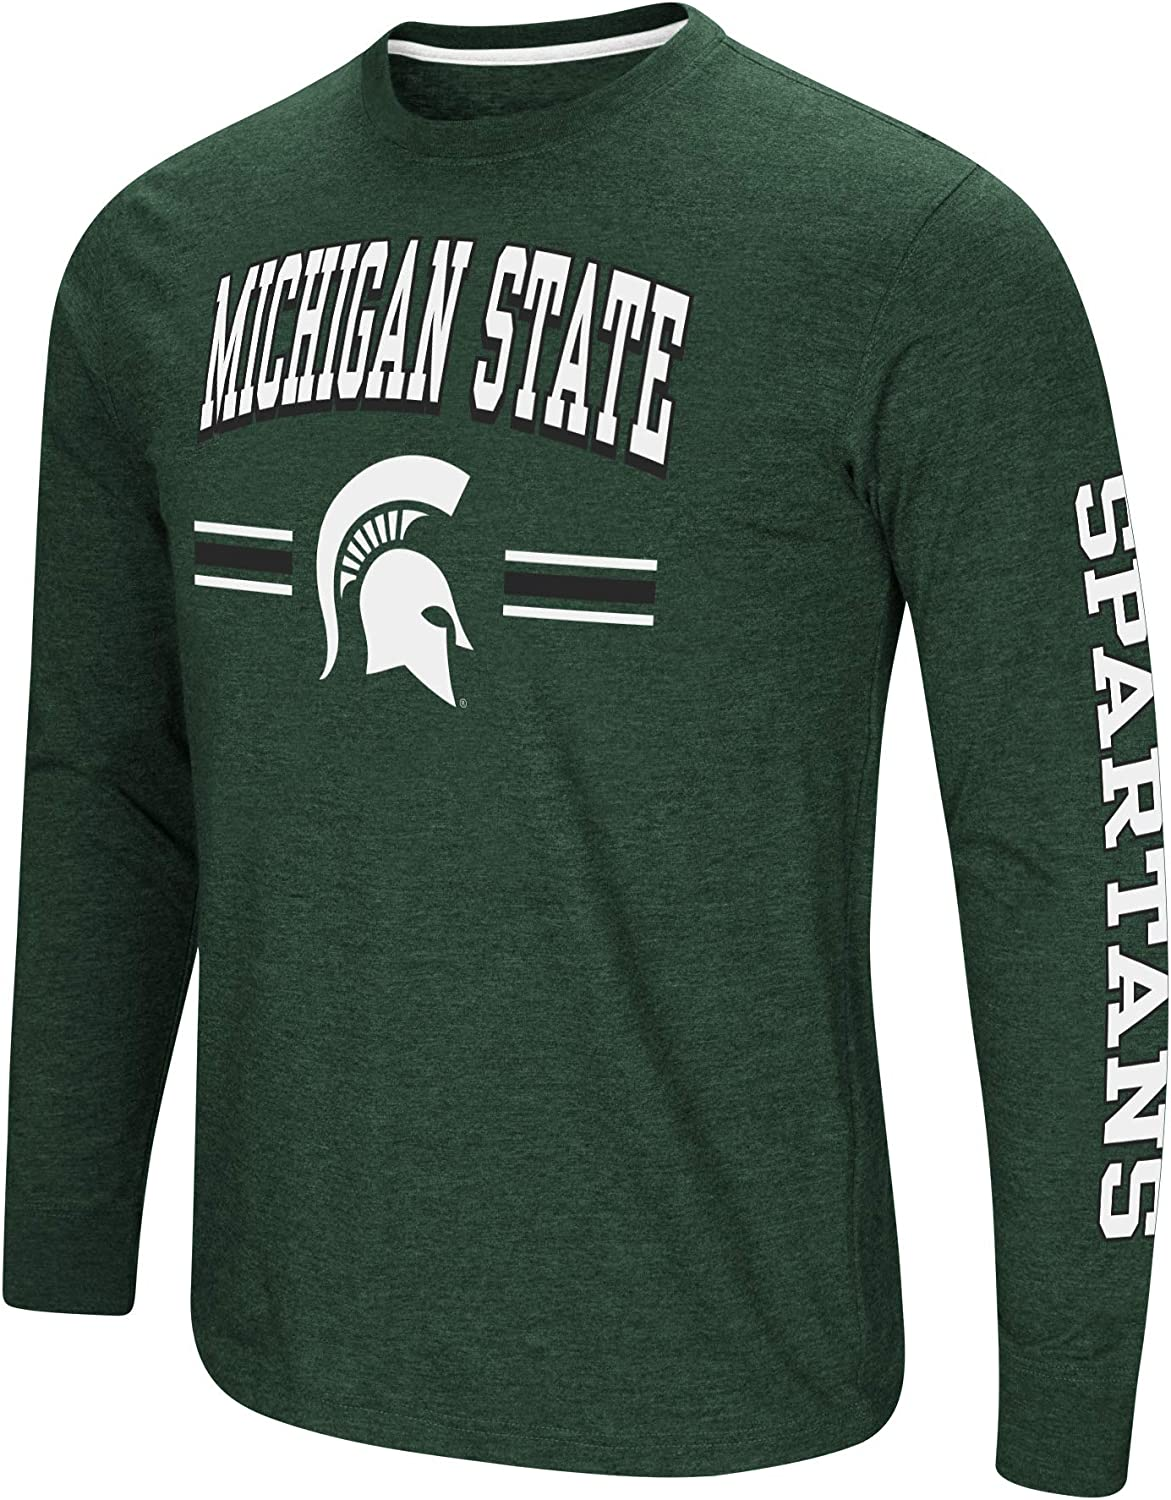 Colosseum Mens NCAA-Touchdown Pass Dual Blend Long Sleeve T-Shirt